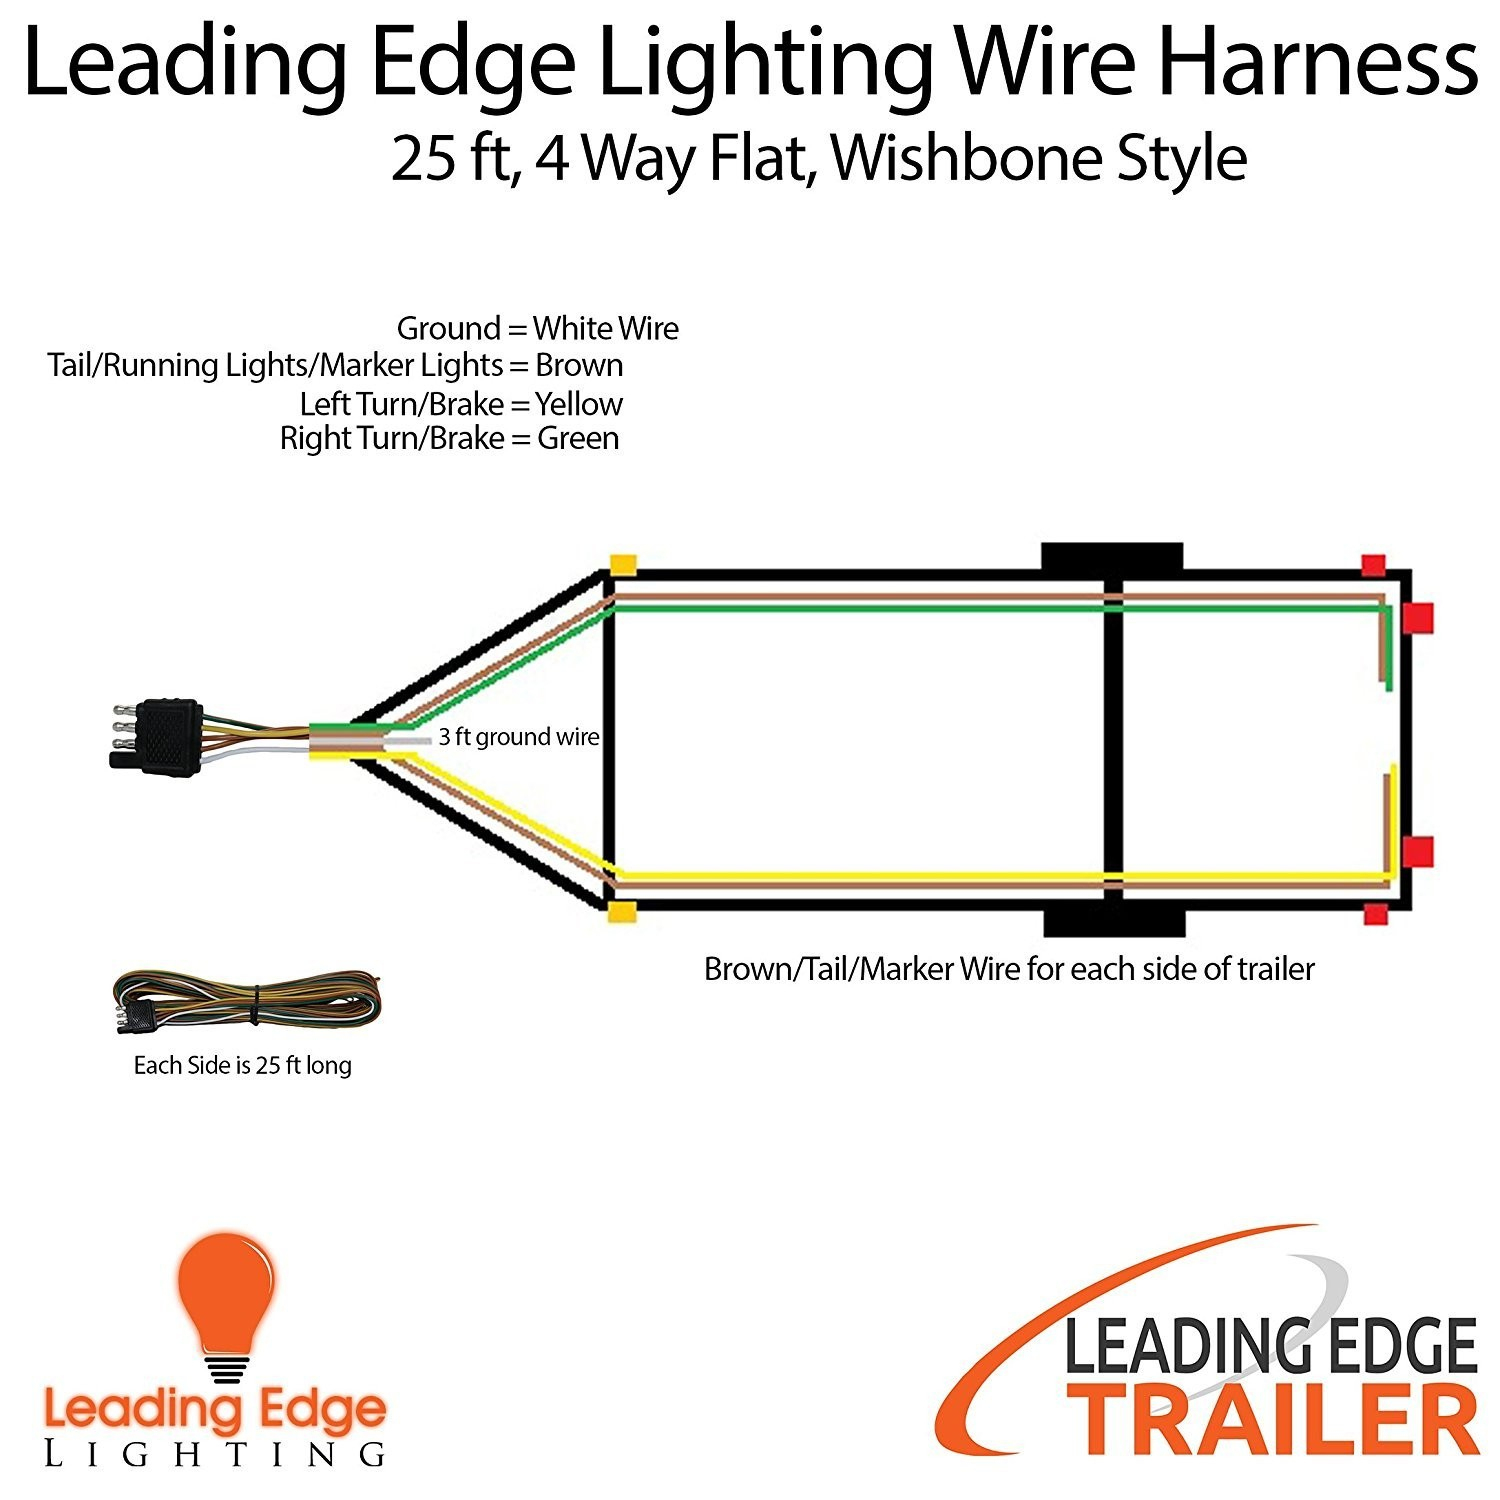 4 Wire Harness | Wiring Library - 4 Pin Trailer Wiring Diagram